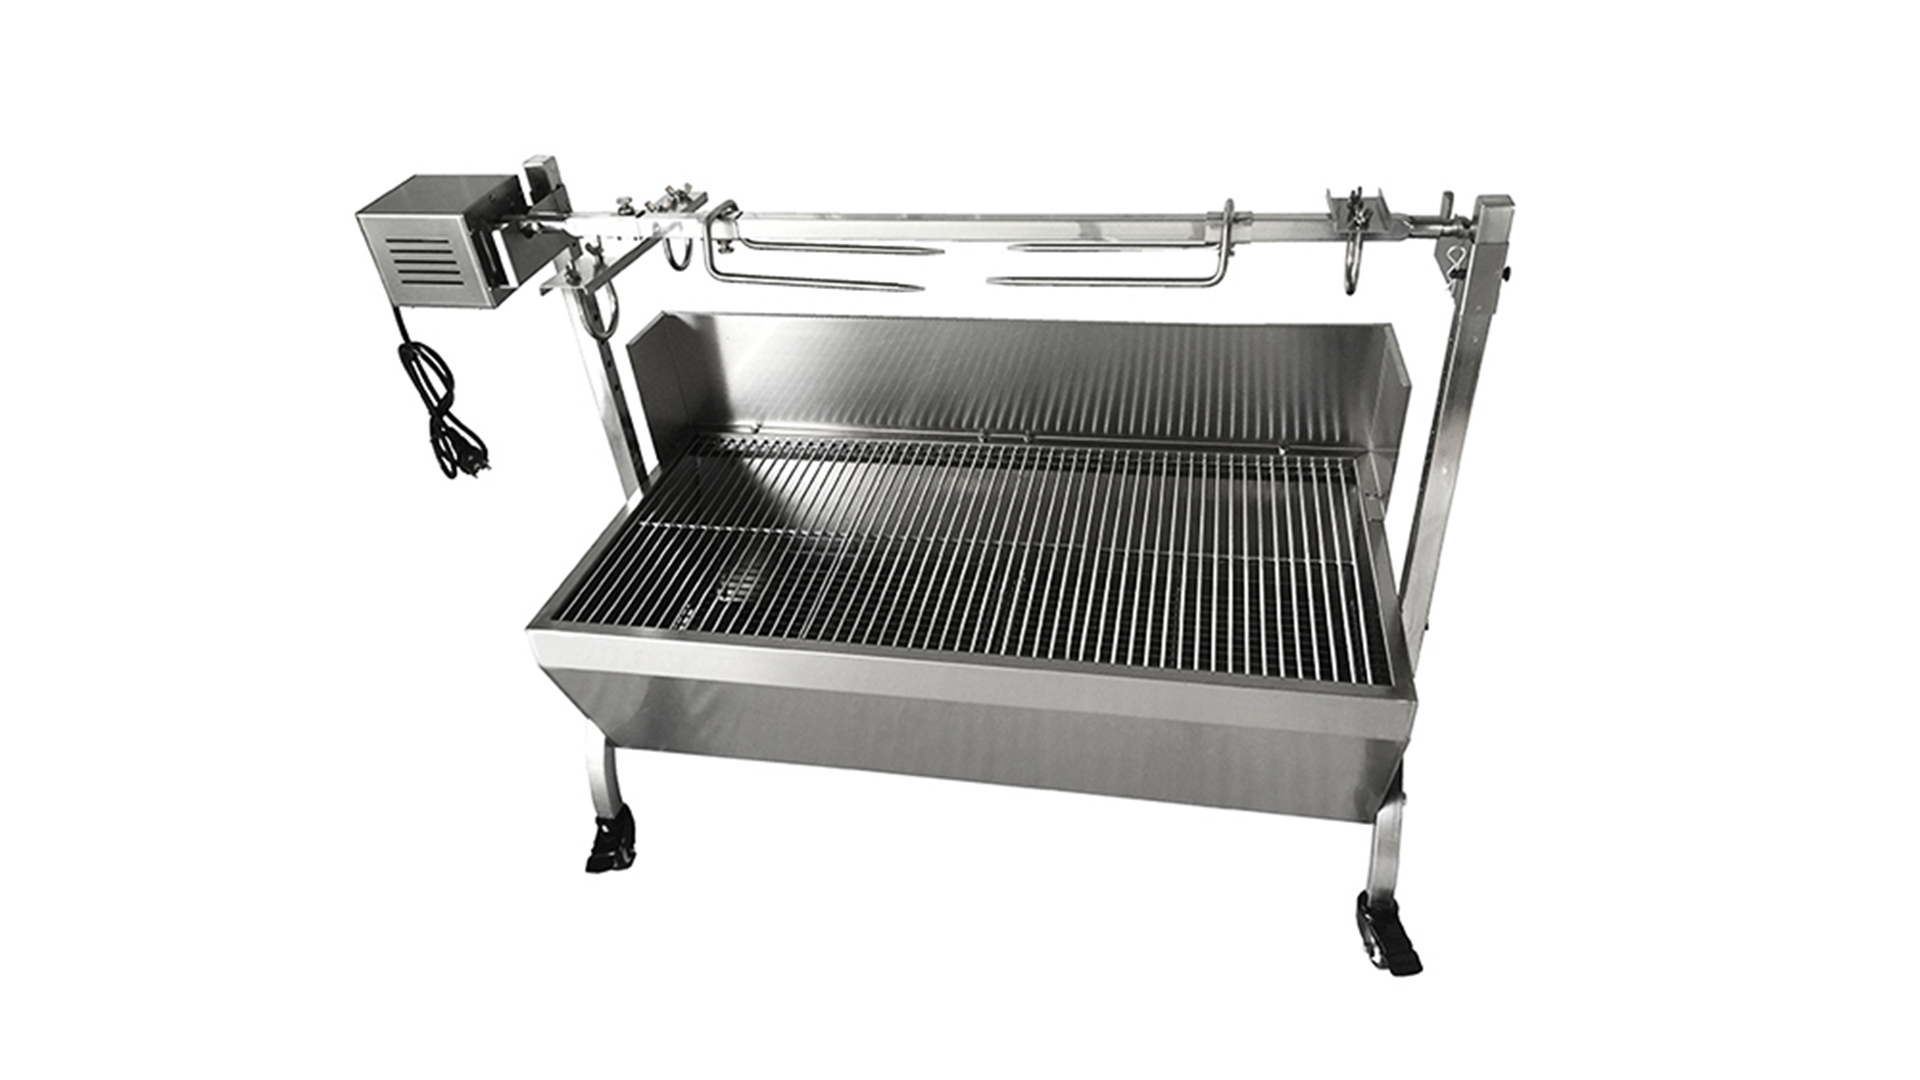 Stainless steel charcoal barbecue bbq grill 440 Lbs Bearing bbq pig spit roaster lamb grill With Electric Motor Grill